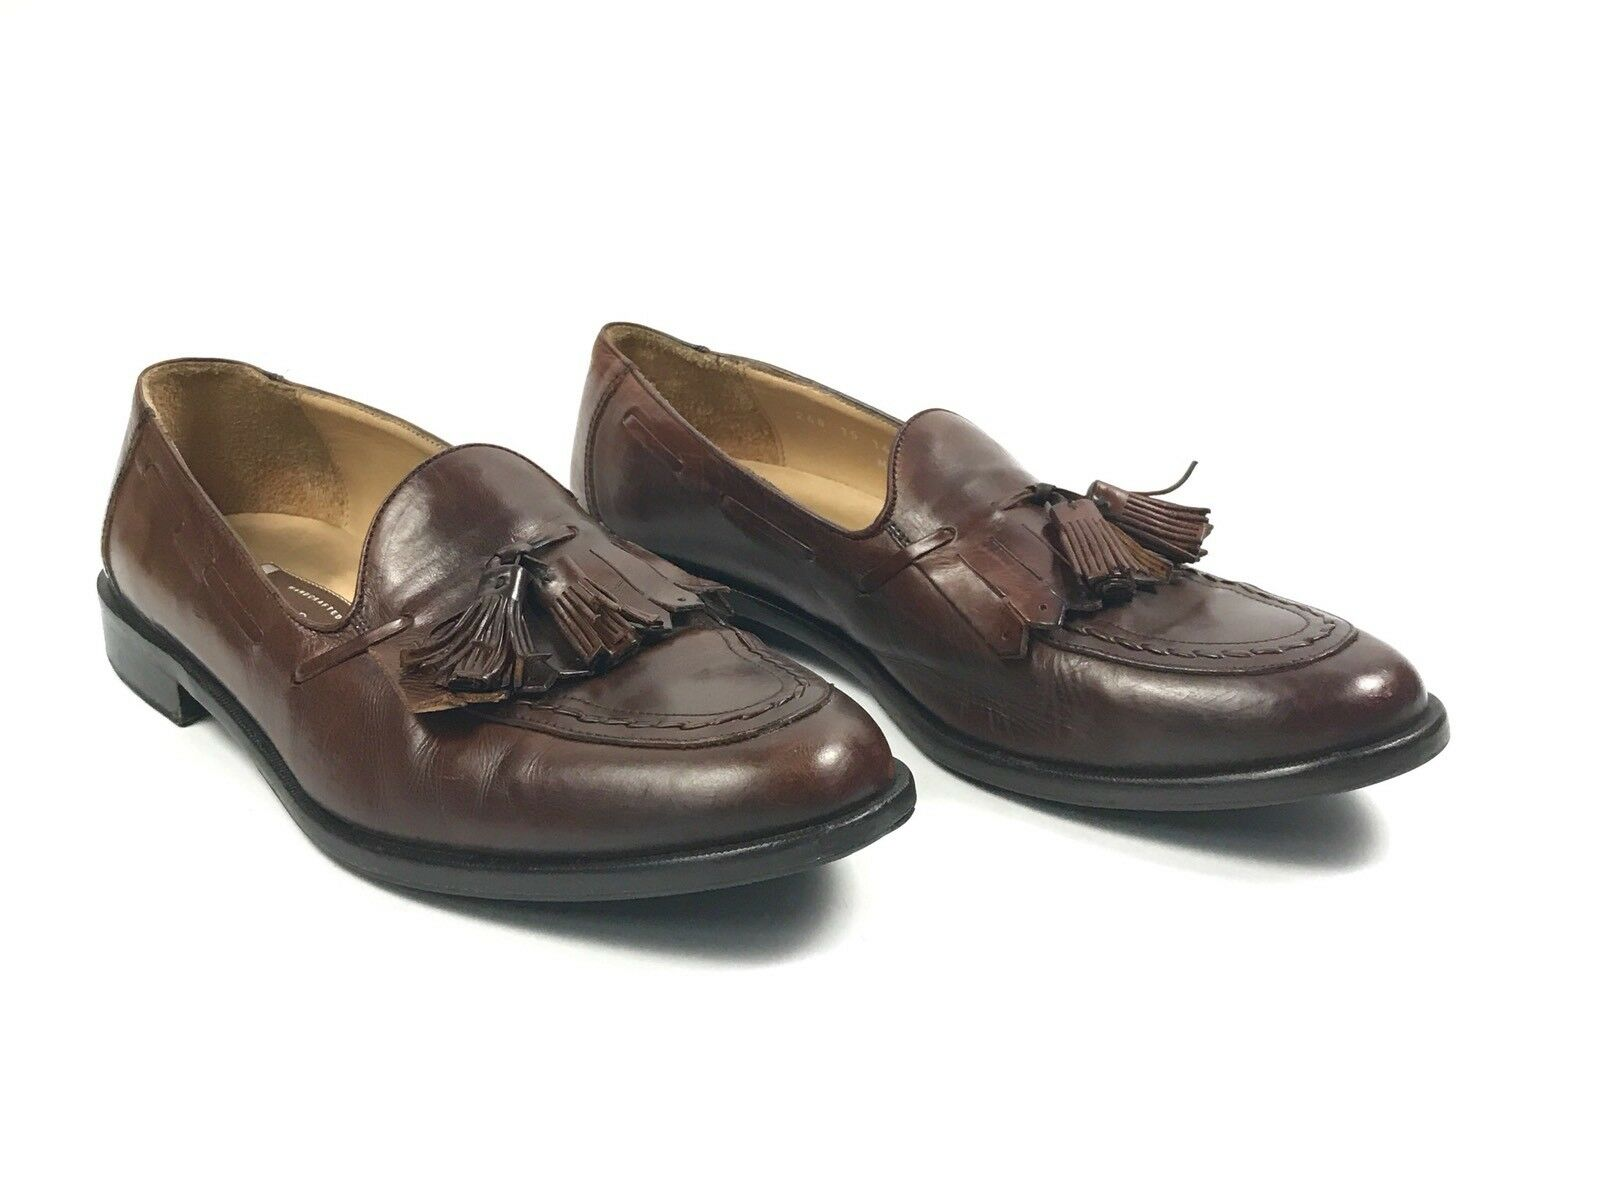 Johnston Murphy Brown Leather Tassel Loafers Handcrafted shoes Size 9.5 M